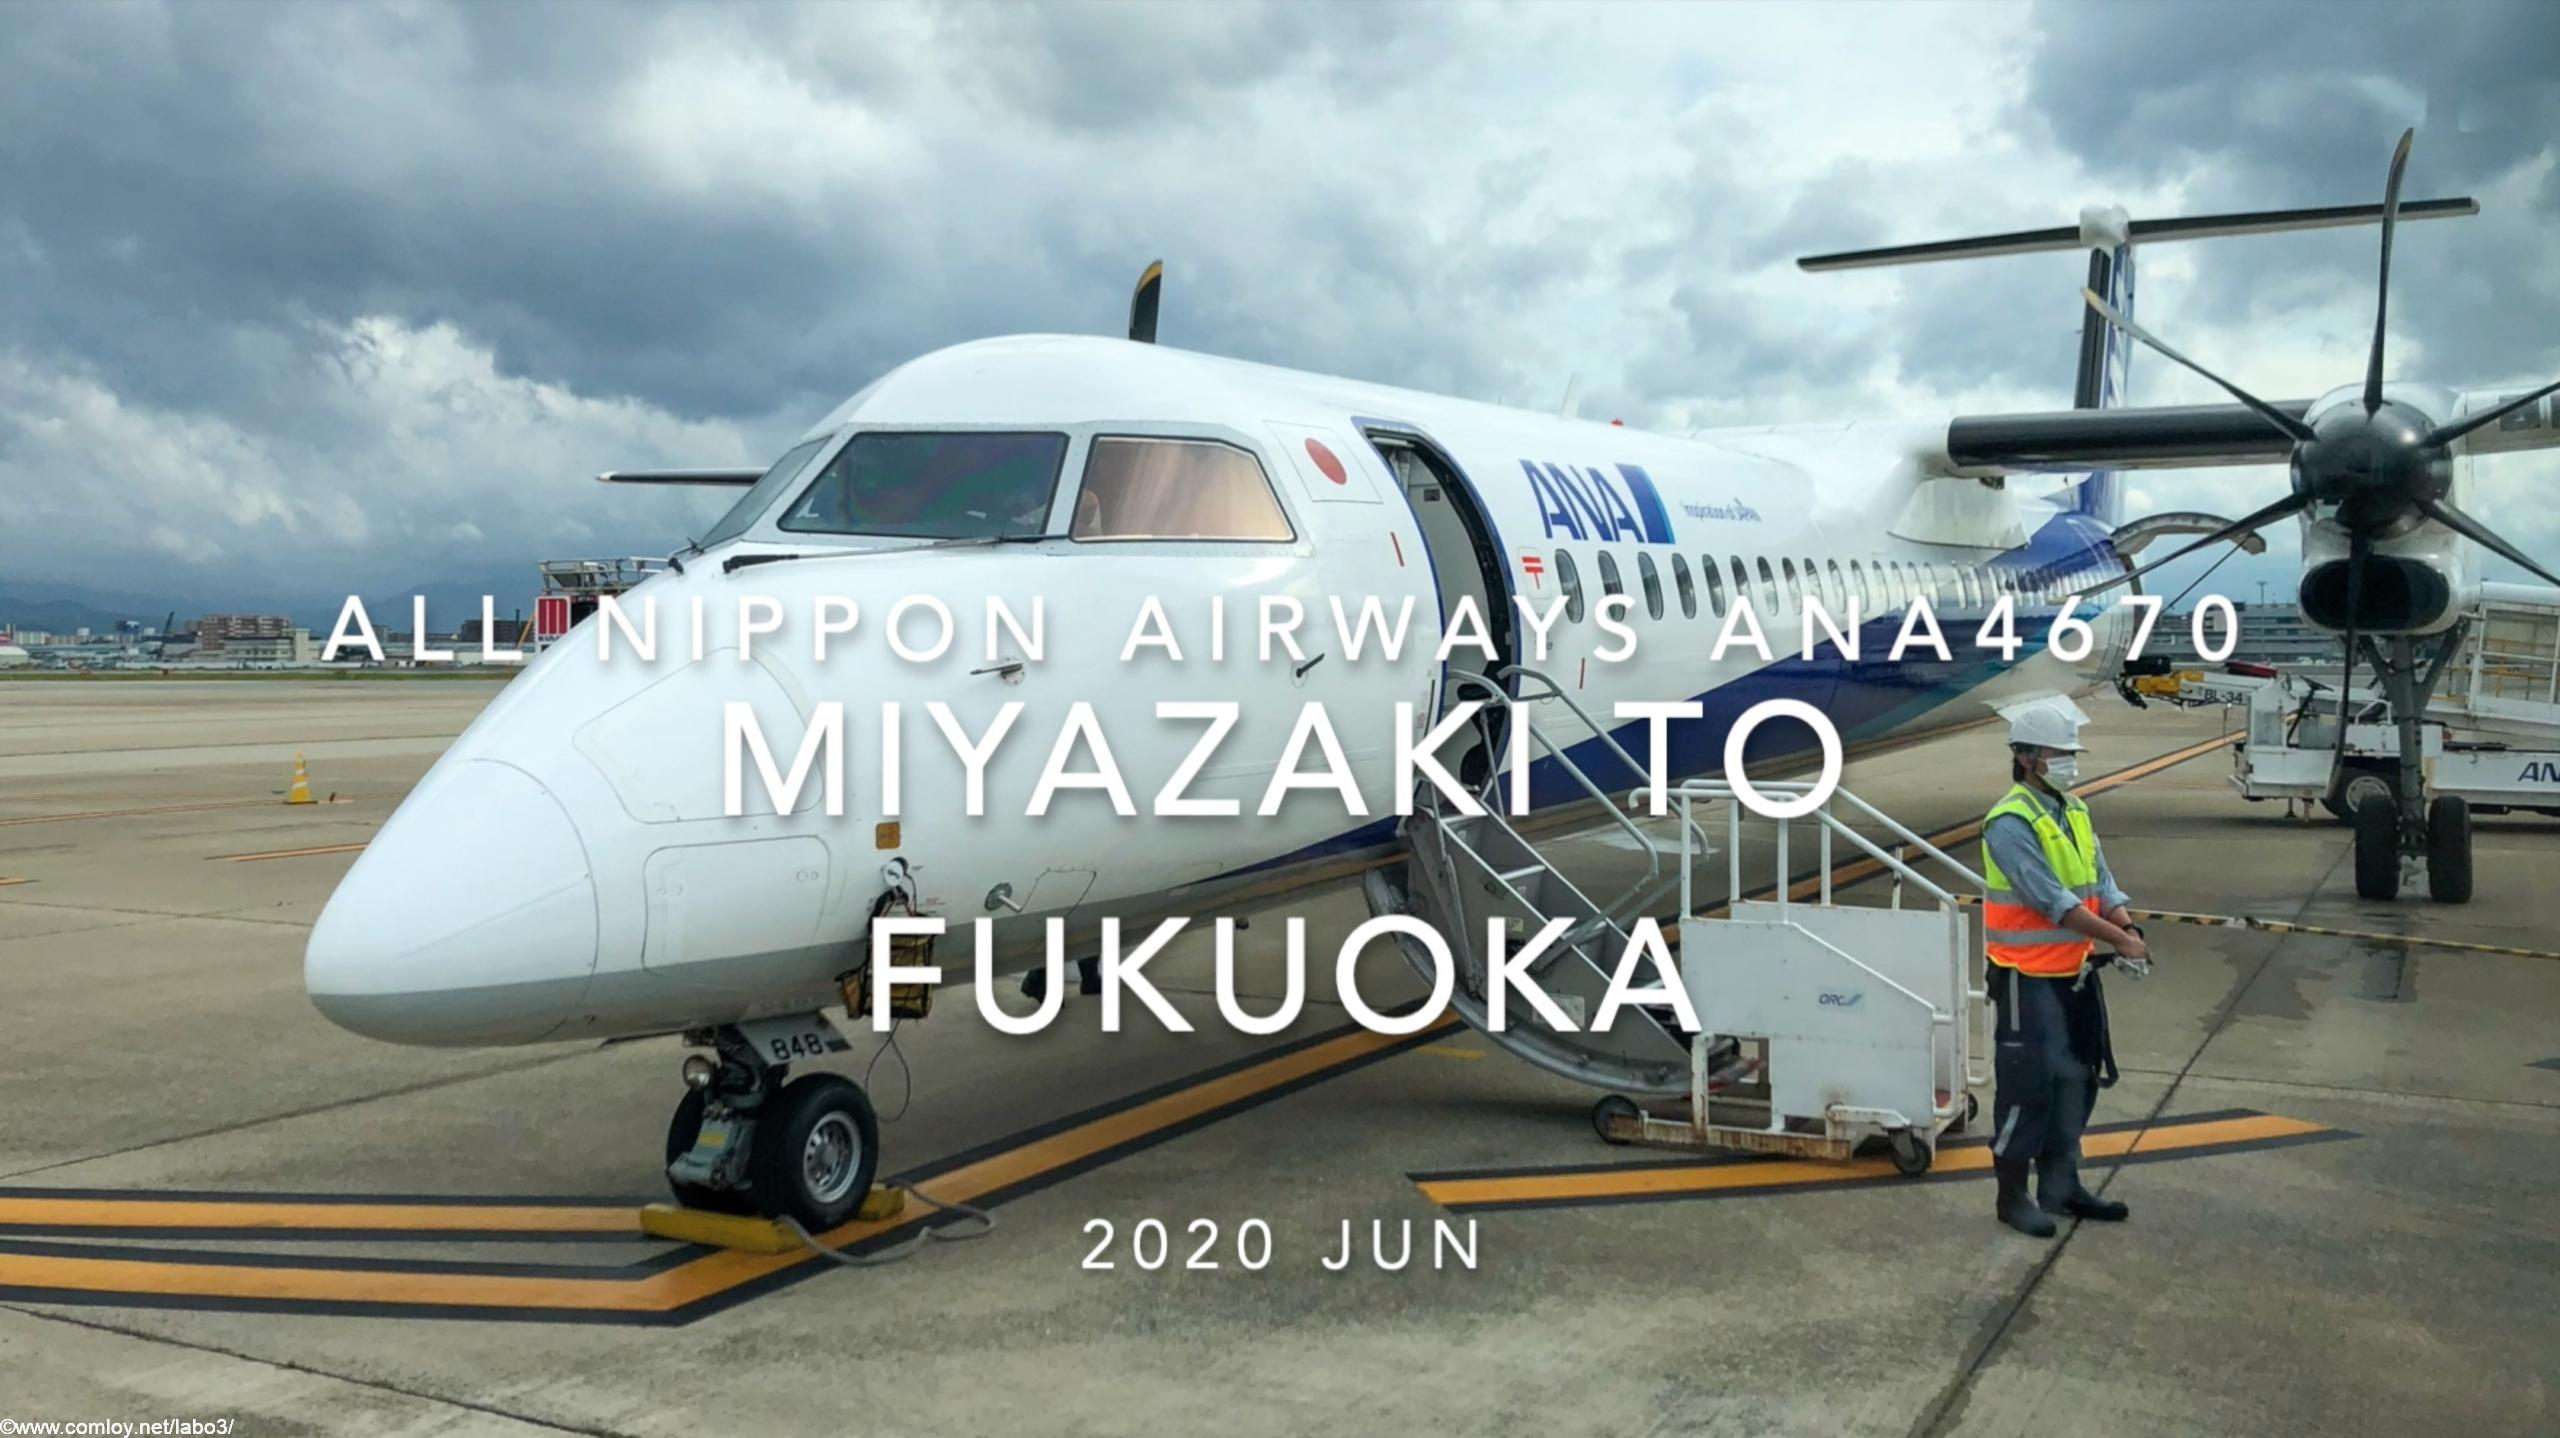 【Flight Report】2020 JUN All Nippon Airways ANA4670 MIYAZAKI TO FUKUOKA 全日空 宮崎 - 福岡 搭乗記